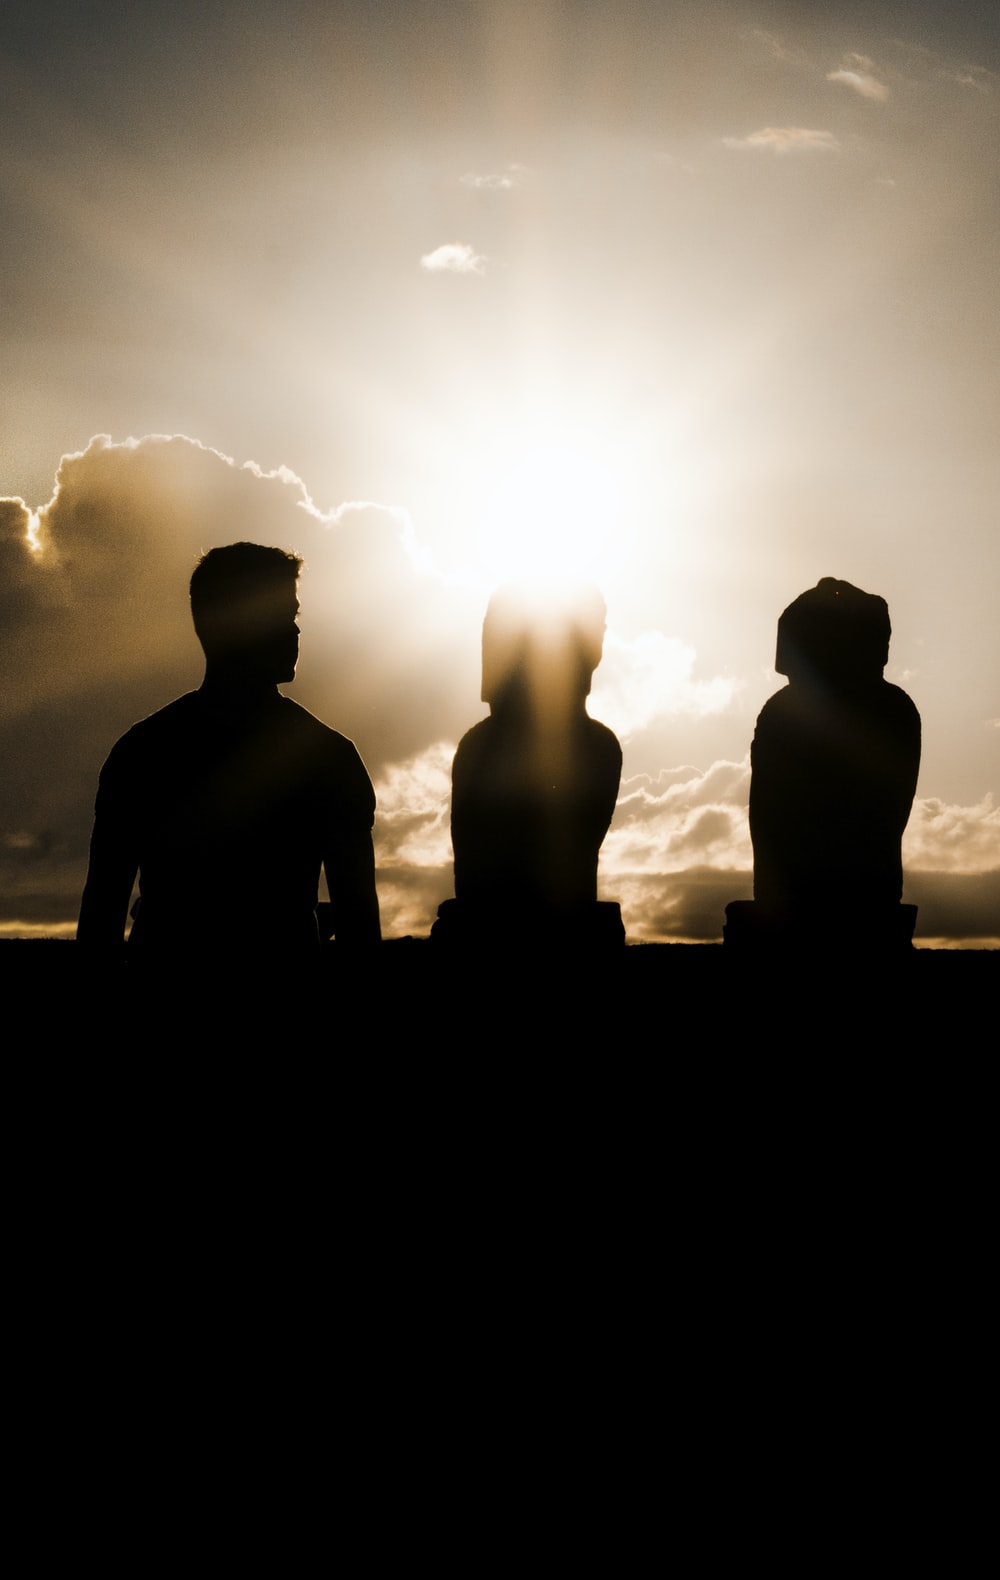 silhouette of three person during golden hour